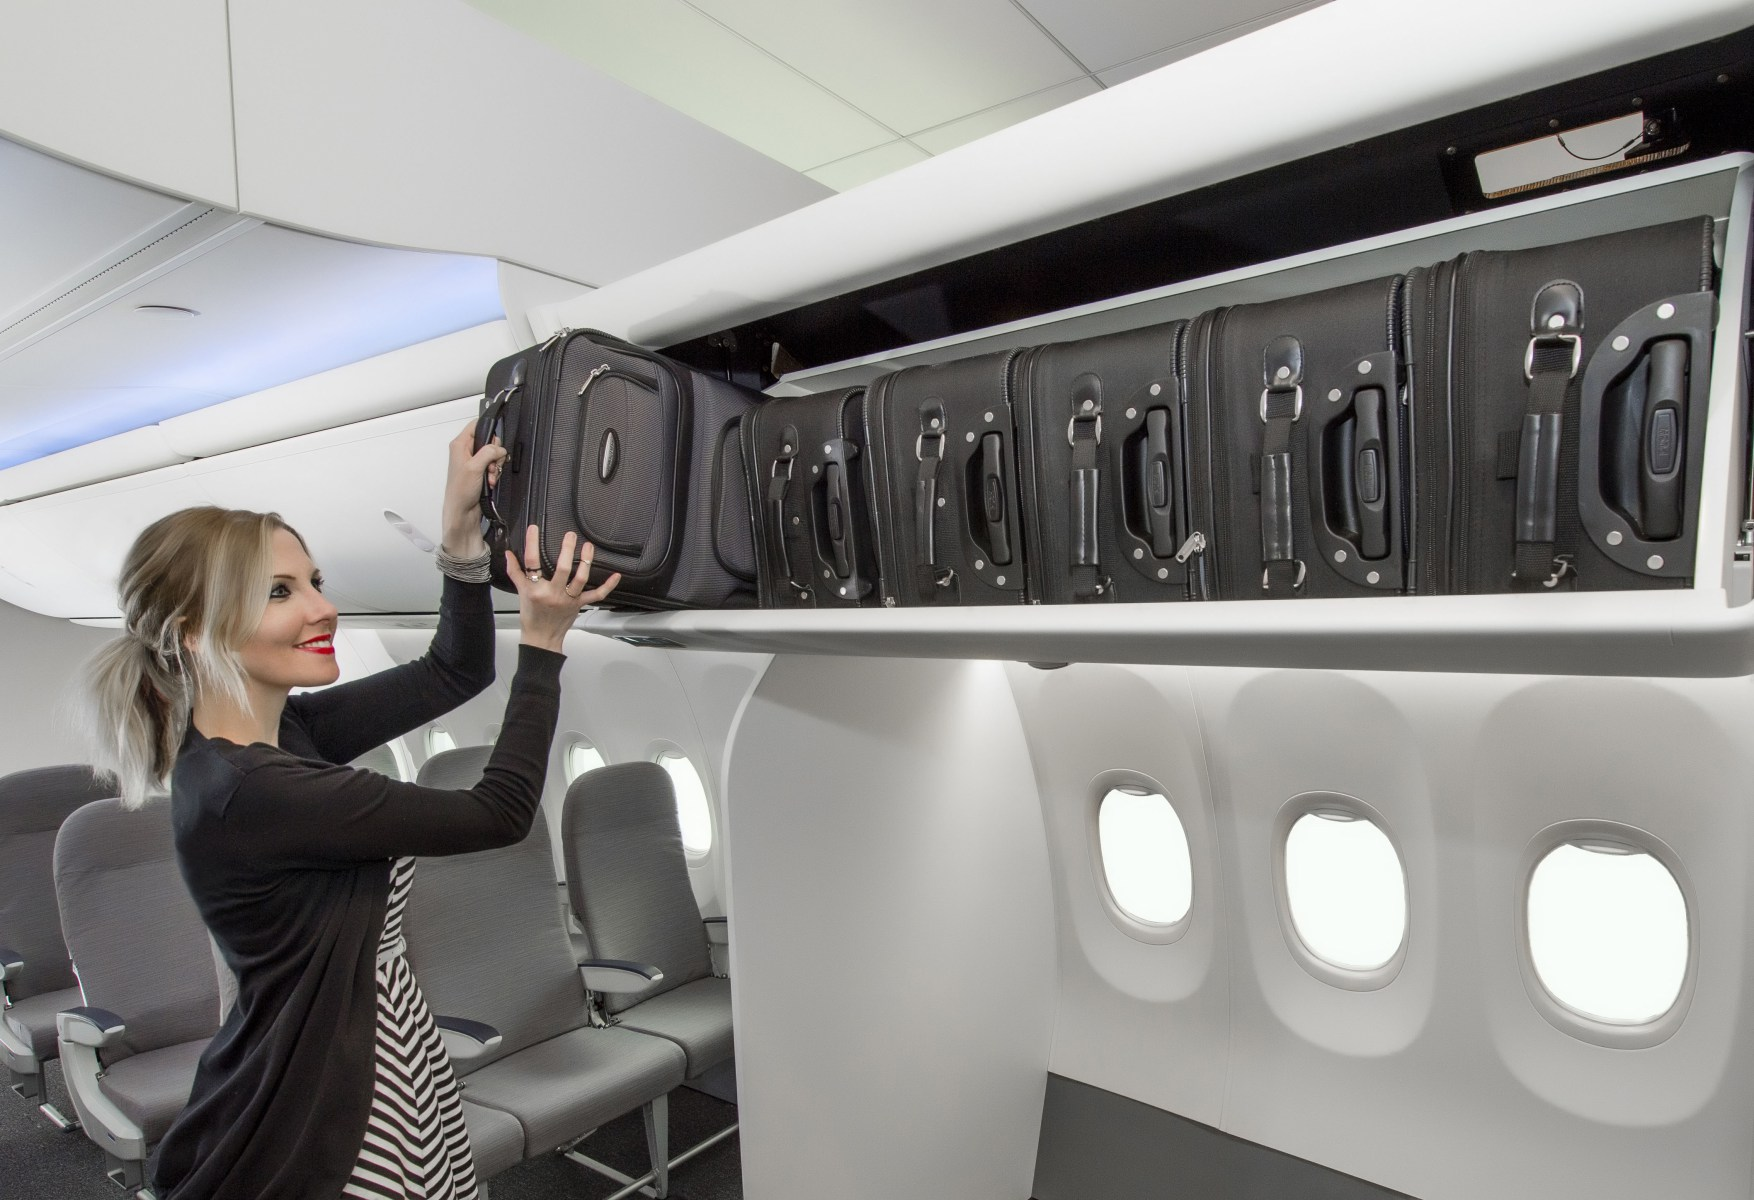 More Overhead Space to Arrive on Alaska Airlines flights